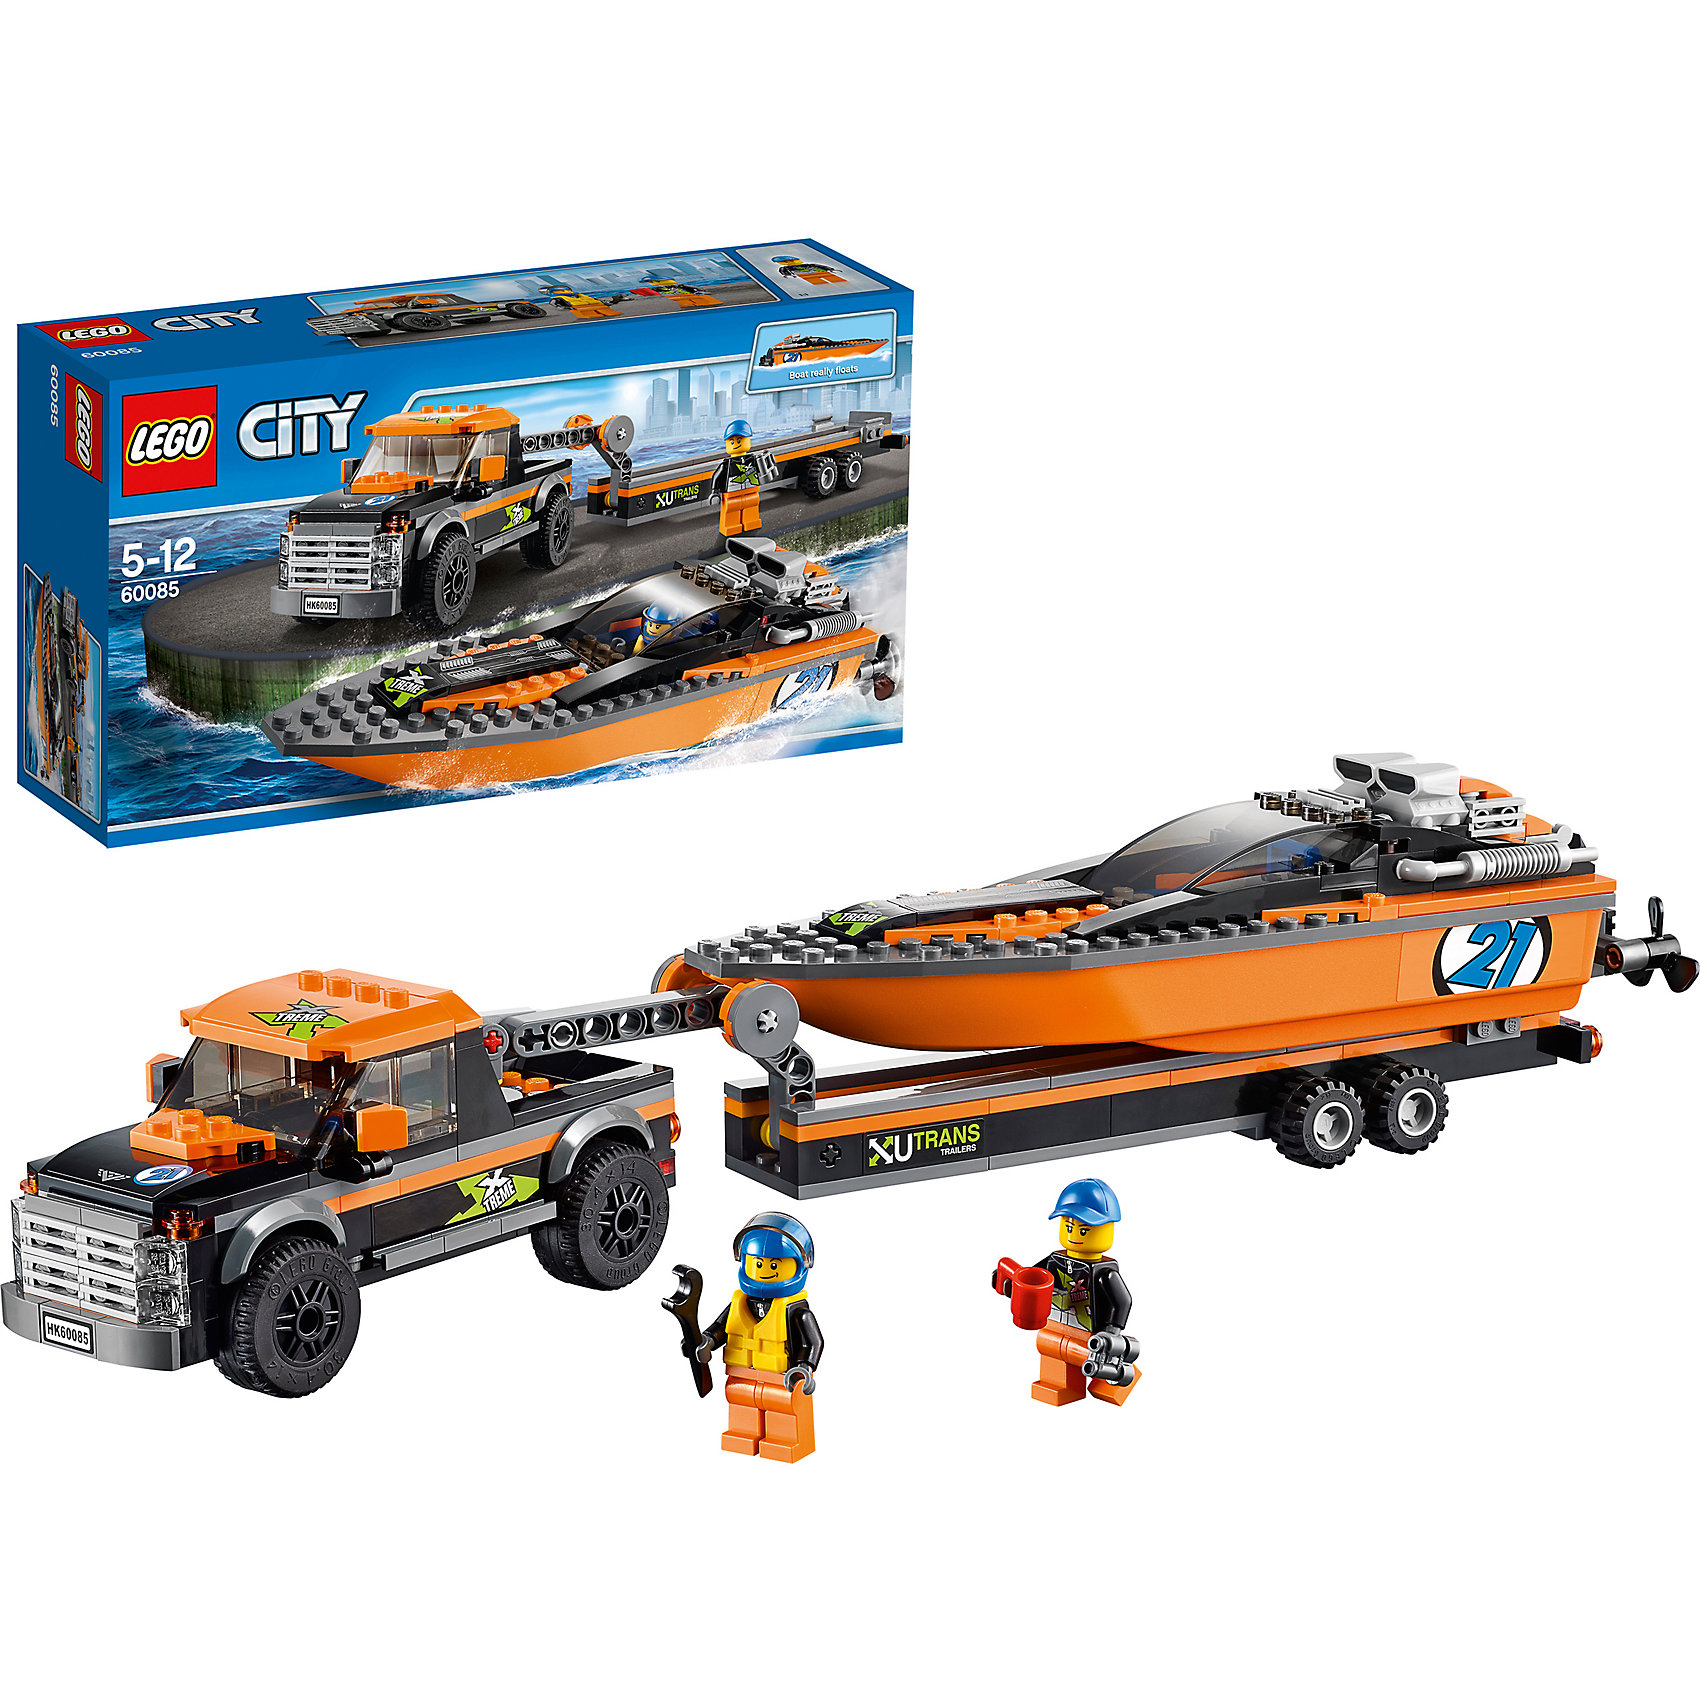 LEGO LEGO City 60085: Внедорожник 4x4 с гоночным катером hw v7 020 v2 23 ktag master version k tag hardware v6 070 v2 13 k tag 7 020 ecu programming tool use online no token dhl free